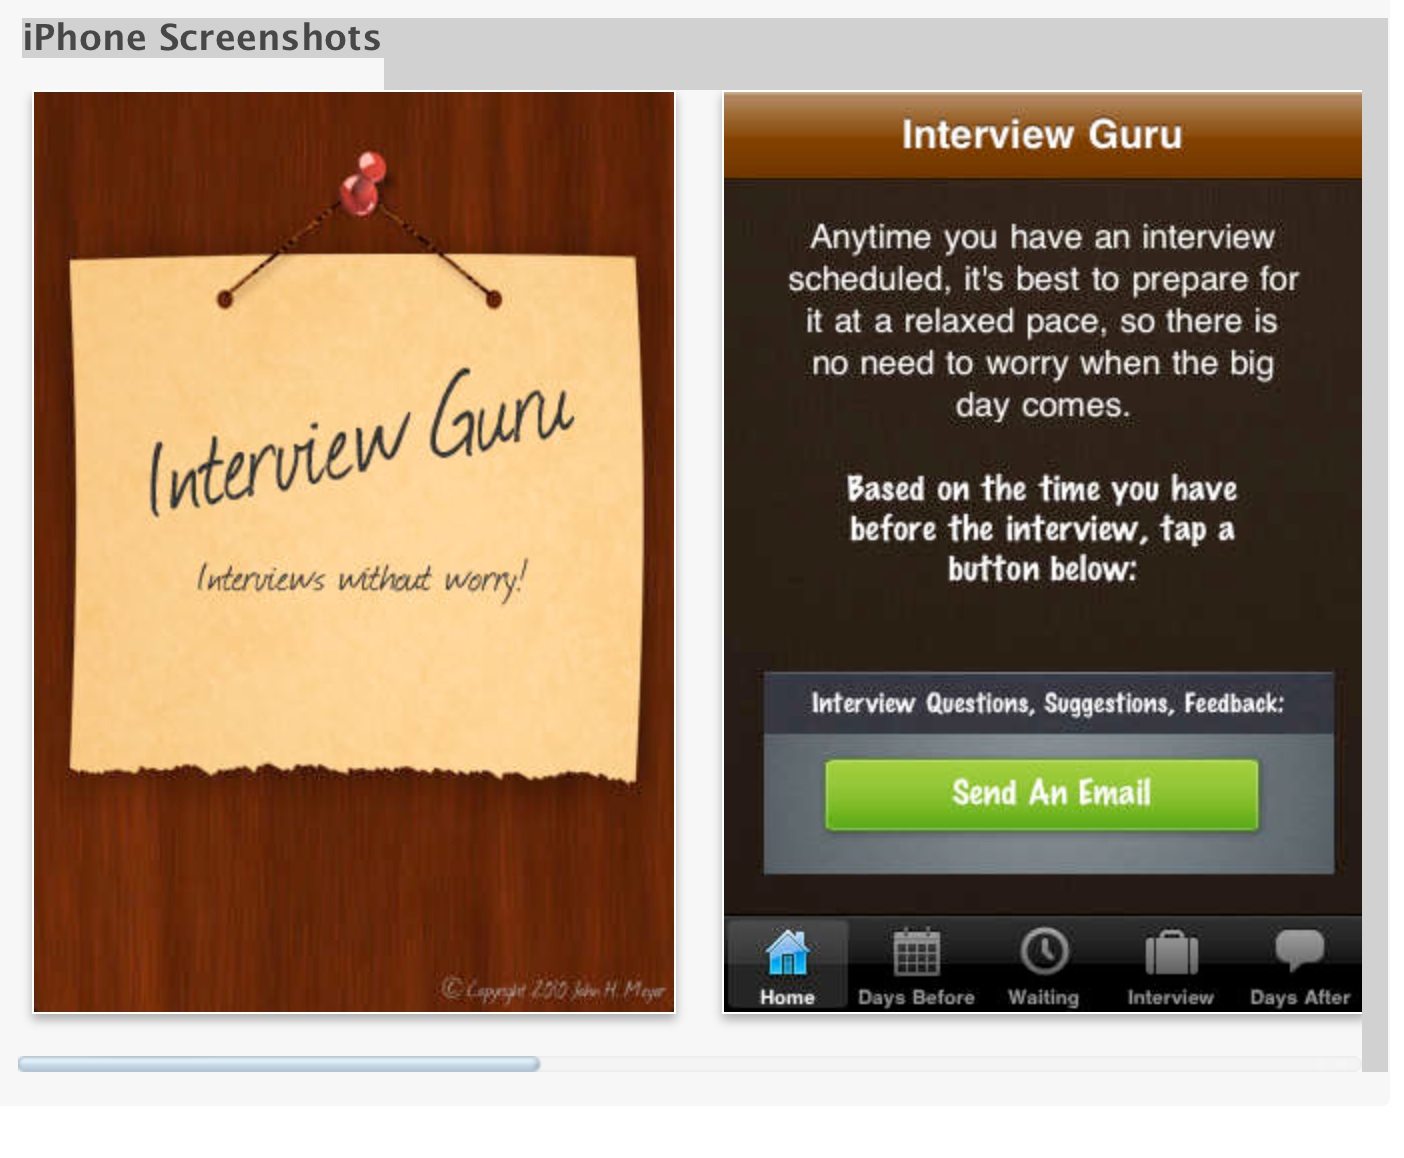 GET YOUR PERFECT JOB! INTERVIEW GURU APP